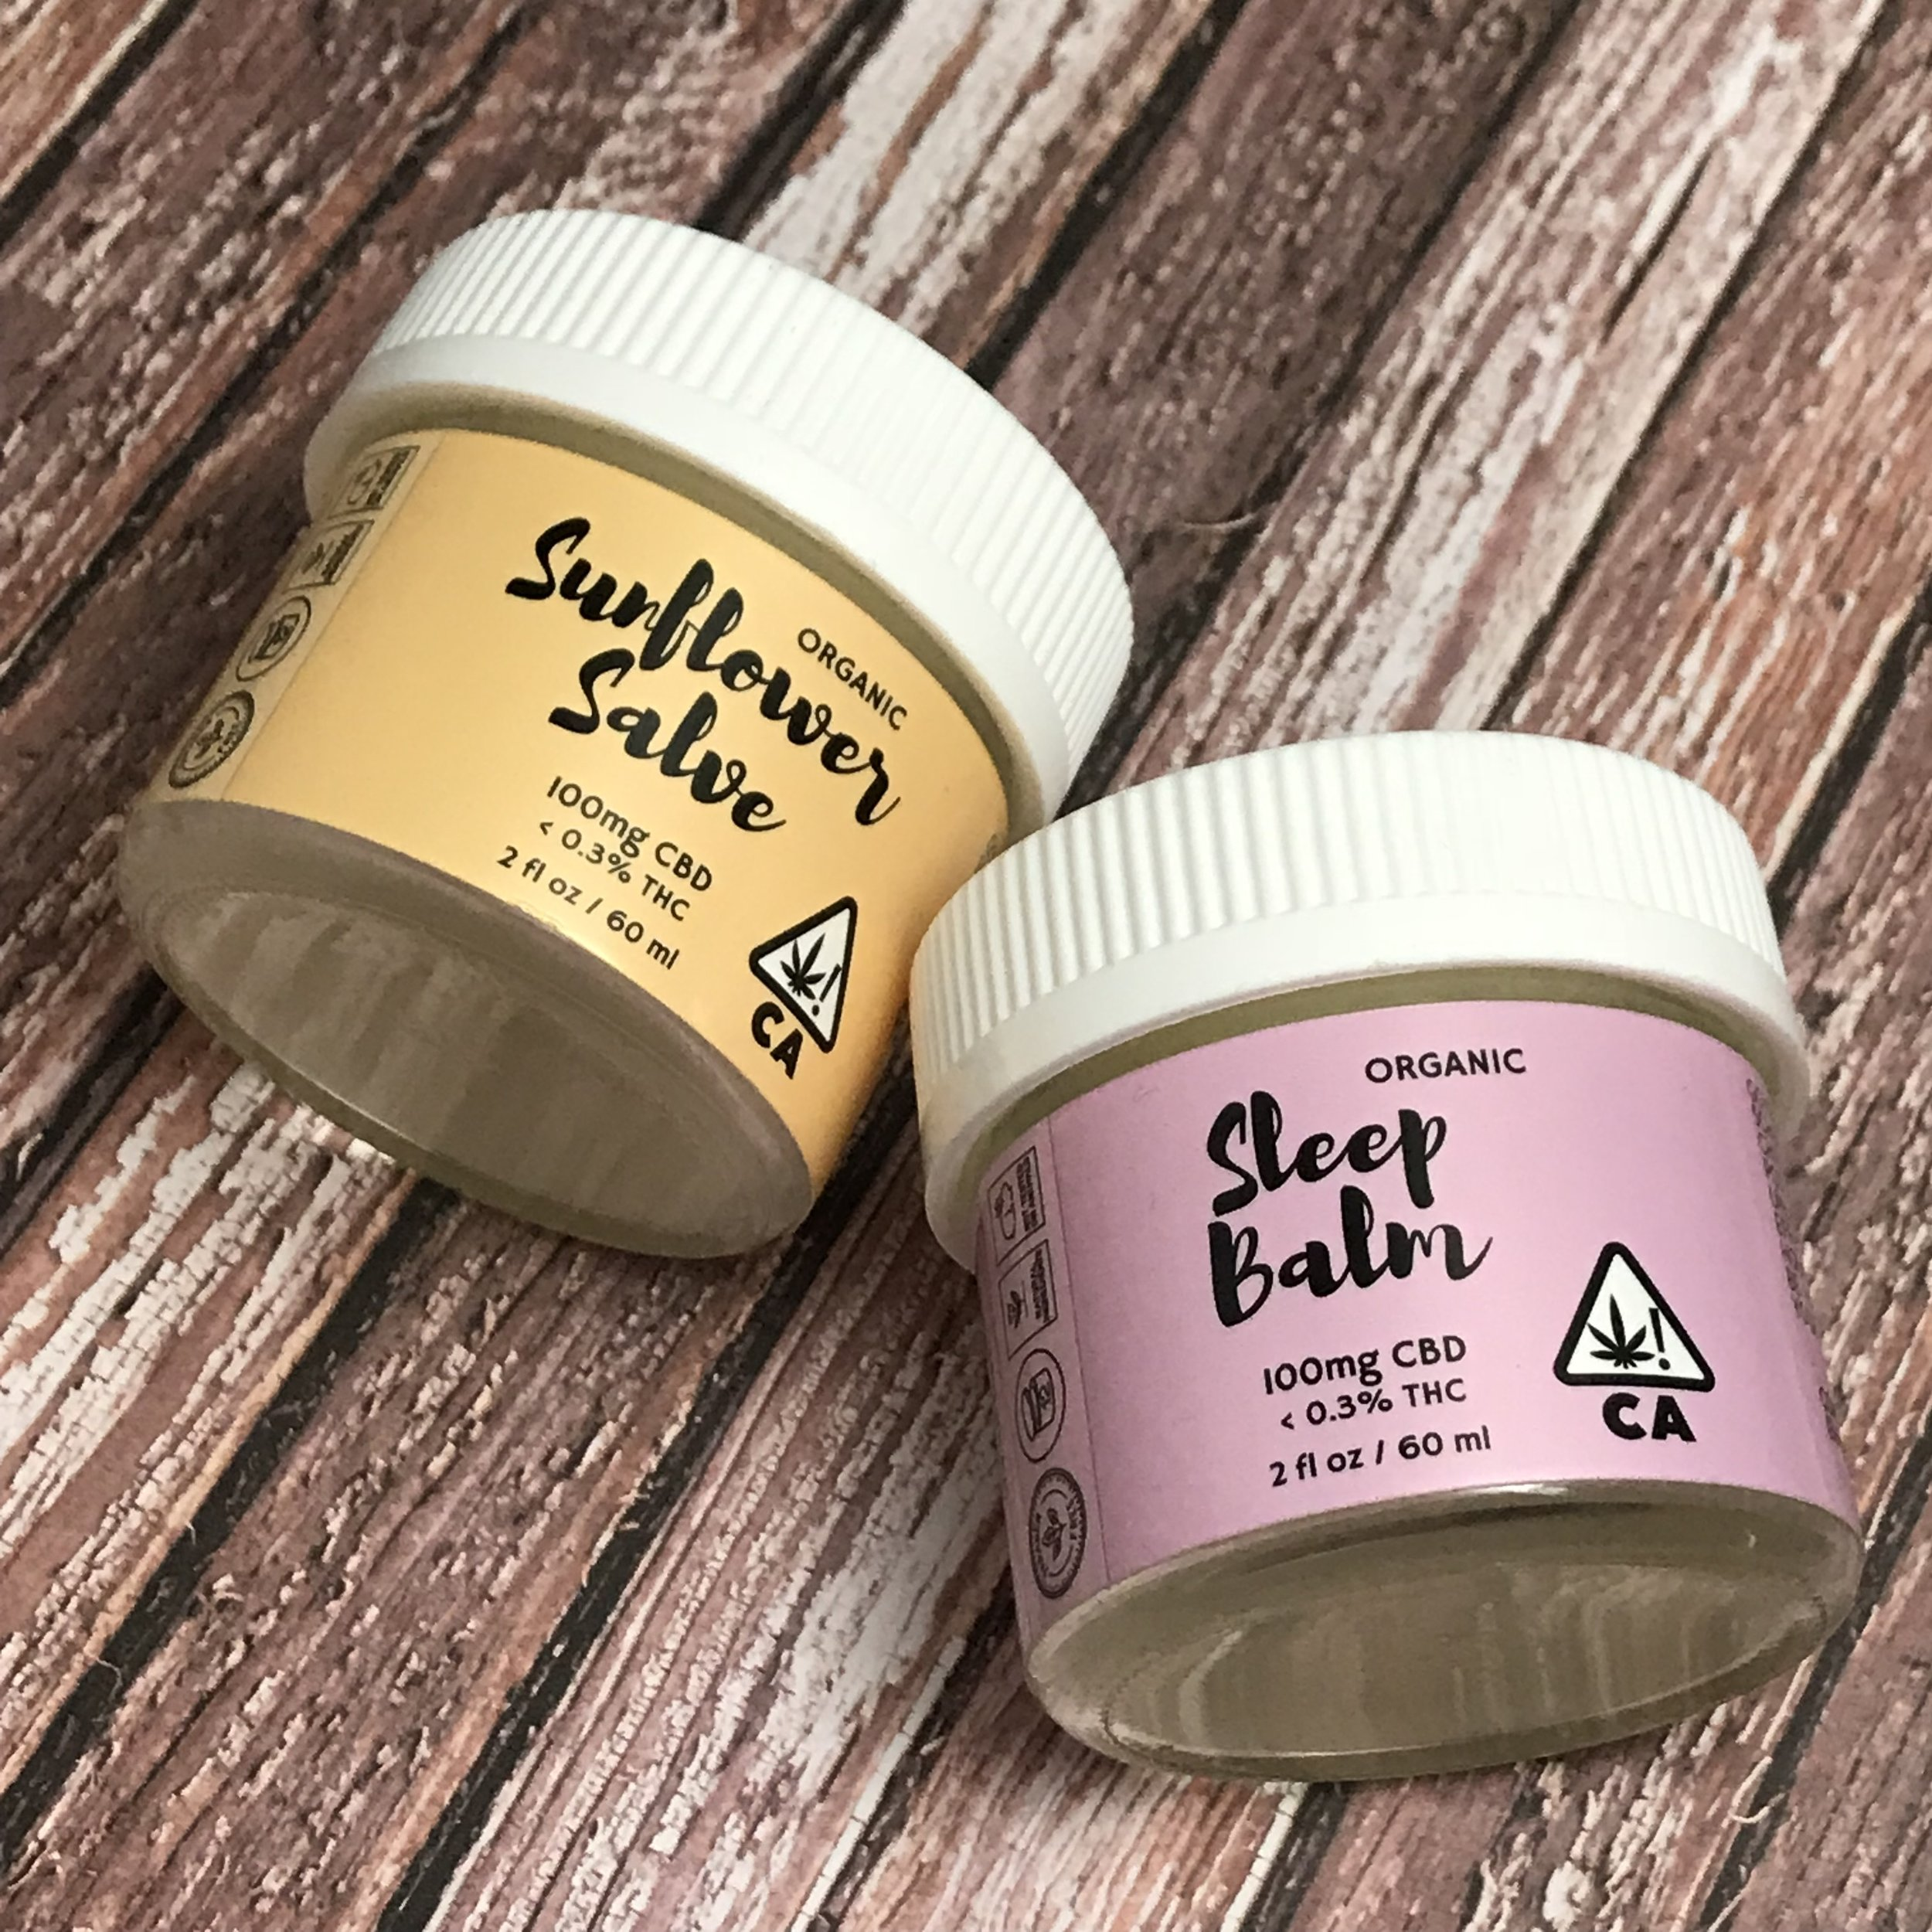 Made From Dirt - Your skin is the biggest organ on your body and 'Made From Dirt' has made it their mission to ensure you give your skin the care it deserves, with an amazing line of CBD Salve's made from all organic ingredients, free of Paraben, Phthalate, BPA and cruelty.Using the combined benefits of CBD and other natural ingredients, 'Made From Dirt' is perfect for targeting the areas that need relief the most. Plus all products are lab tested to insure the highest quality and come complete in a child proof jar, making 'Made From Dirt' a must for every medicine cabinet!Sunflower SalveThe perfect solution for broken, damaged and aging skin. Combining the anti inflammatory and skin soothing properties of Sunflower's with the amazing benefits of CBD, this Salve will have your skin feeling amazing after the first use and have you ready to ditch those drug store creams!Sleep BalmCombining the calming effects of chamomile, cedarwood, lavender, and benefits of CBD this Salve is perfect for those nights you need a little relief for a racing mind. Just rub a little on your temples, wrist or even the soles of your feel and let your anxiety melt away!Lyna ThompsonLearn more madefromdirtorganics.com